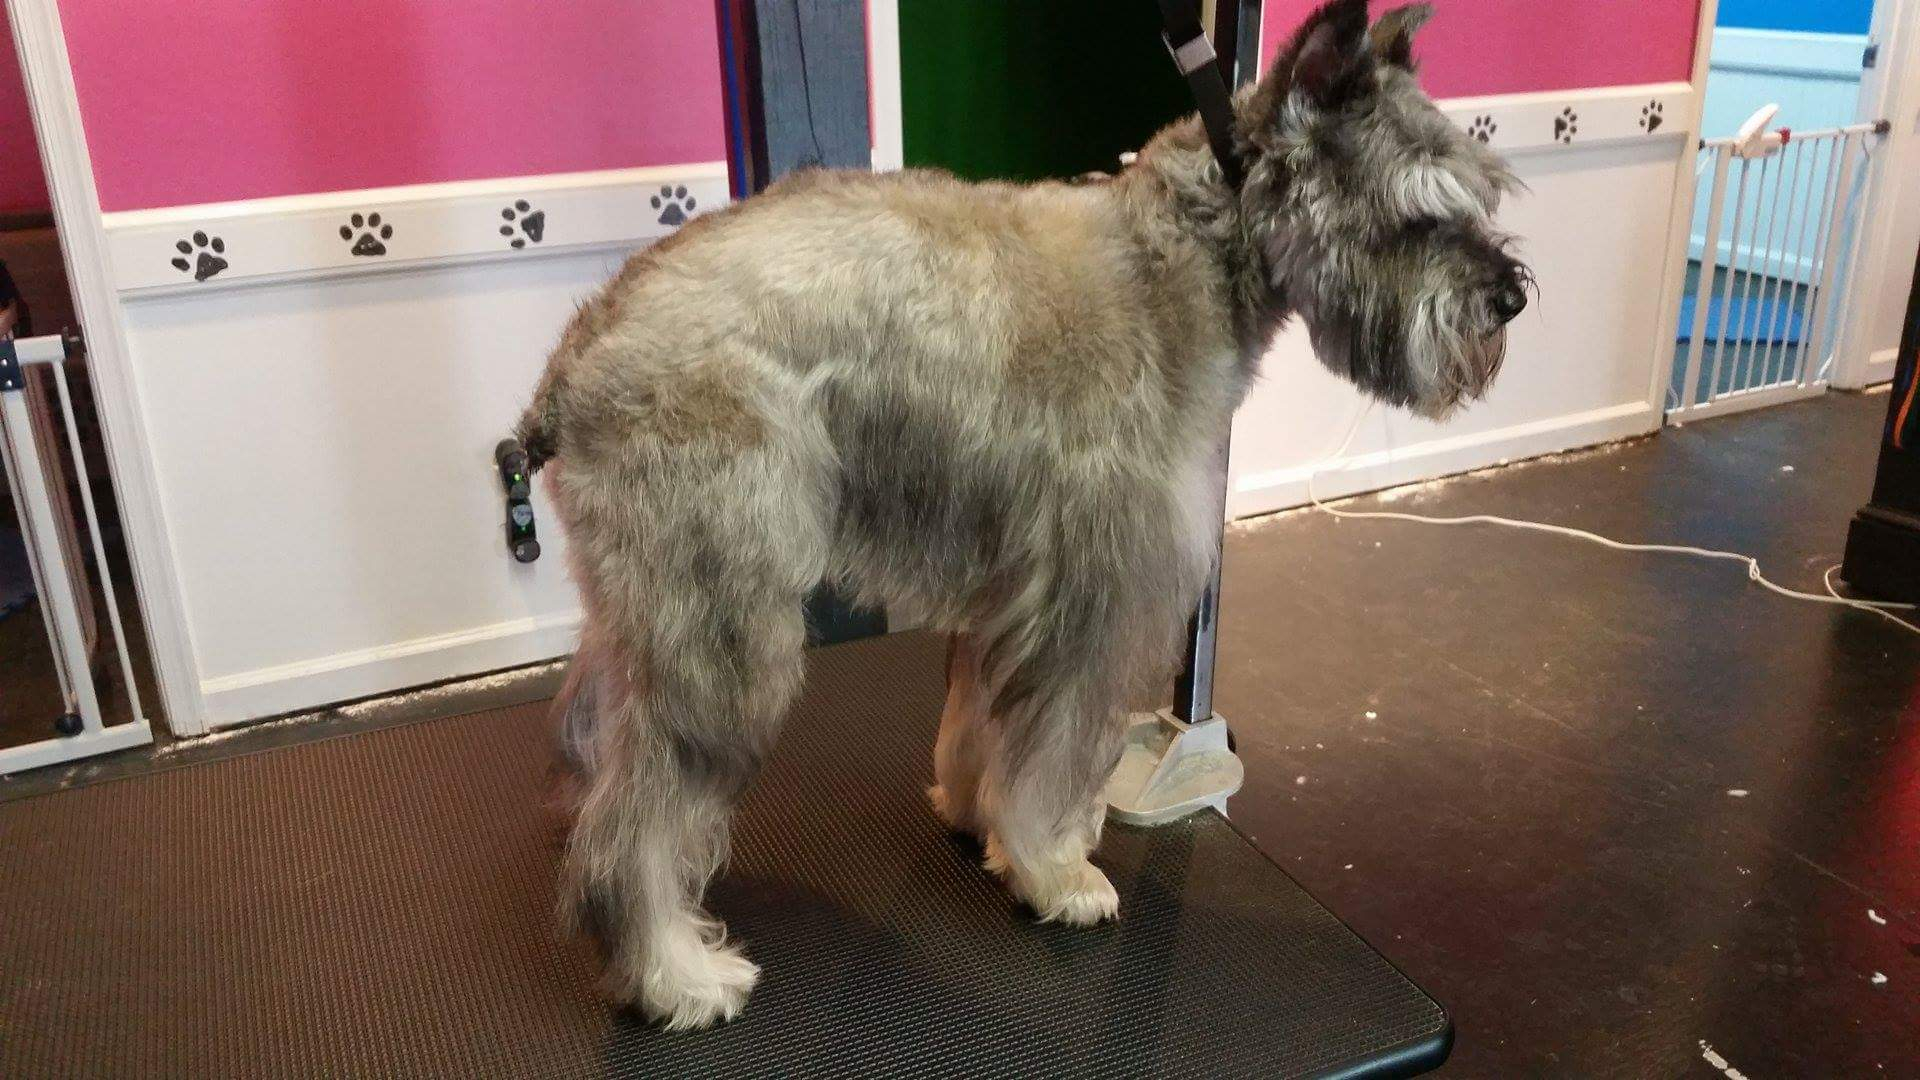 Grooming before after stress free grooming solutioingenieria Choice Image